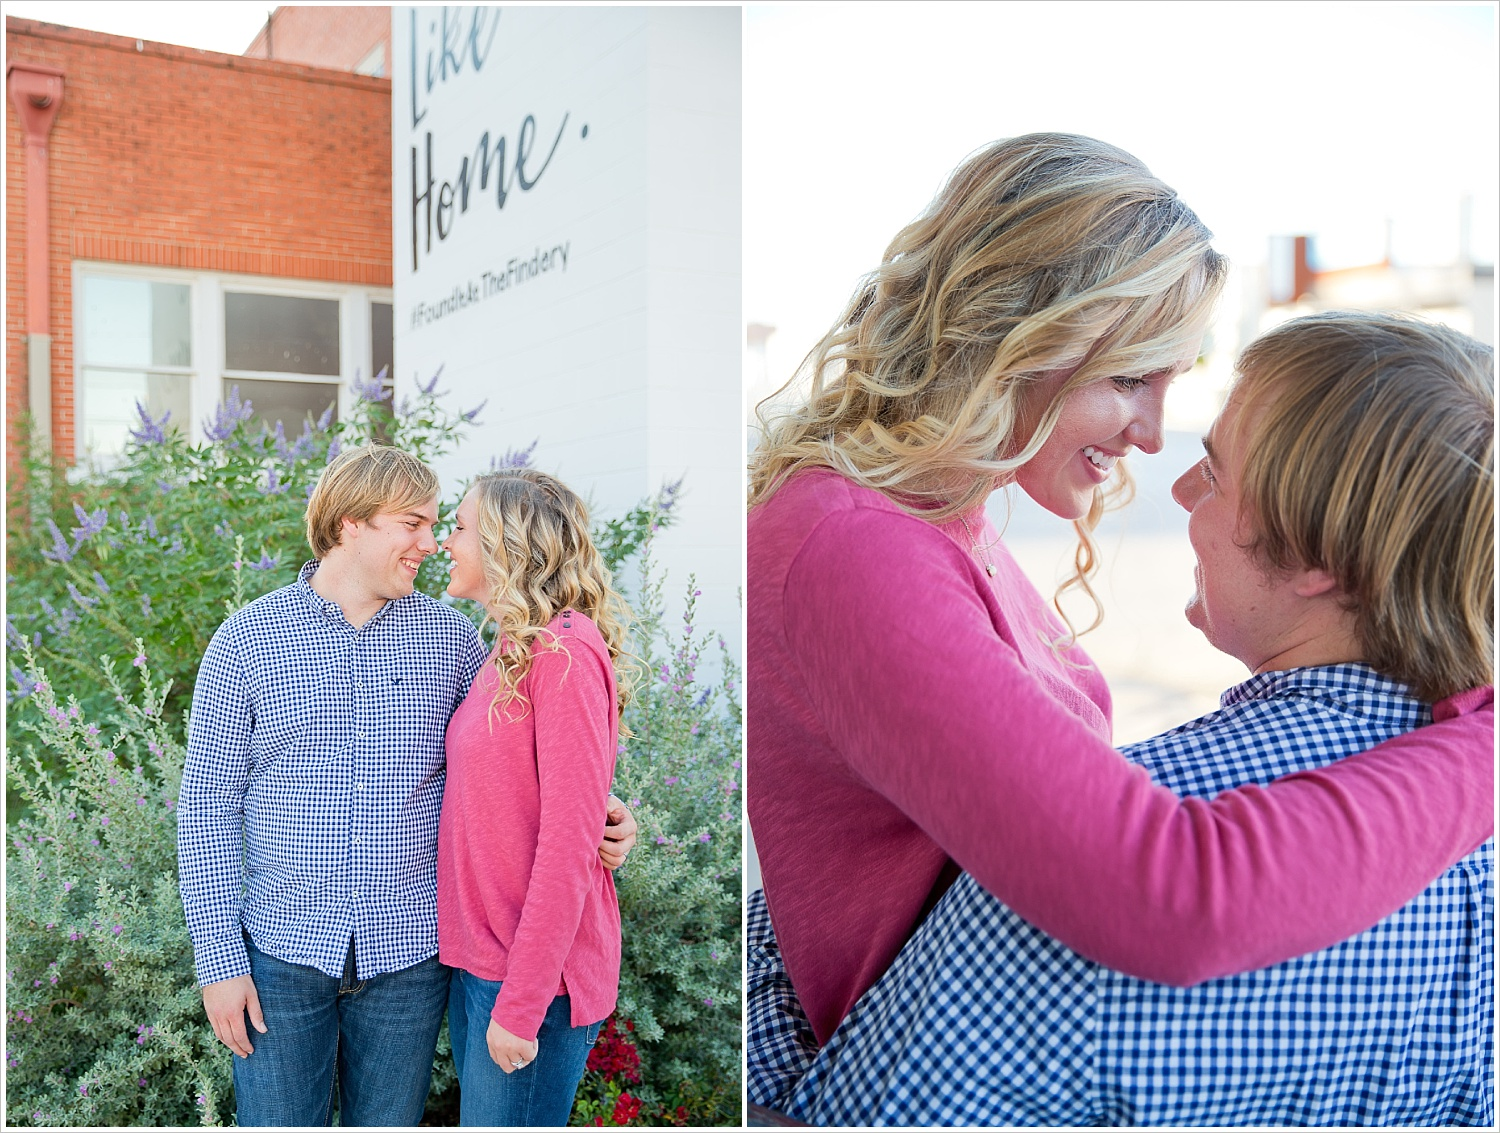 Couple's portraits | Love Photography in Waco, Texas | Jason & Melaina Photography